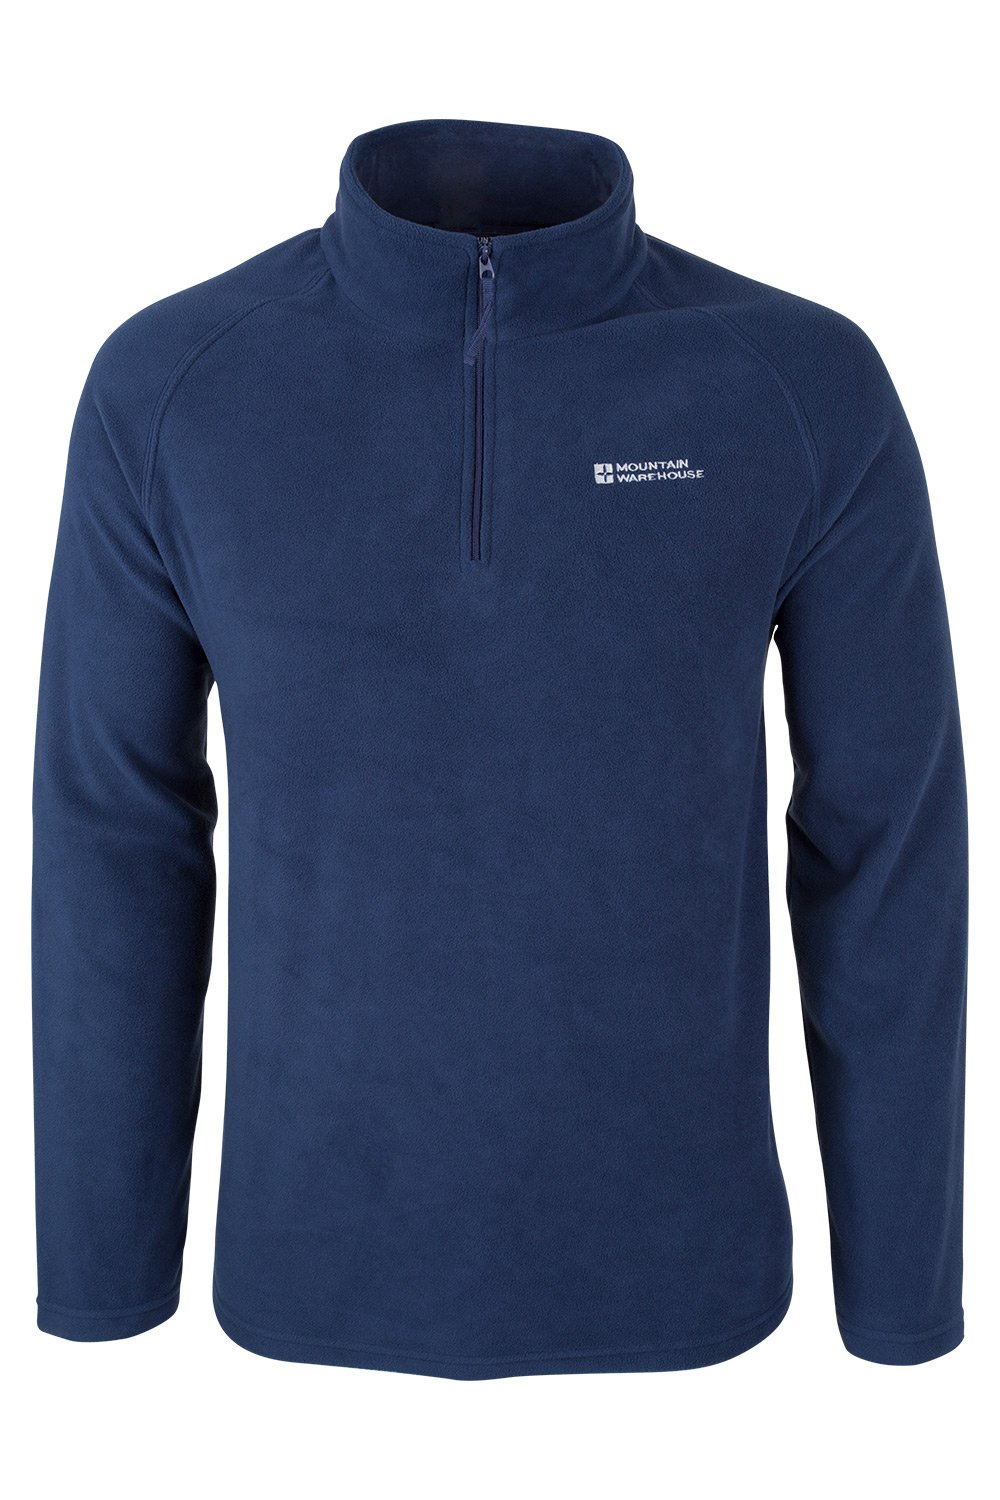 Mountain Warehouse Snowdon Mens Micro Fleece Top - Warm, Breathable, Quick Drying, Zip Collar Fleece Sweater, Soft & Smooth Pullover - for Travelling, Winter Walking 1